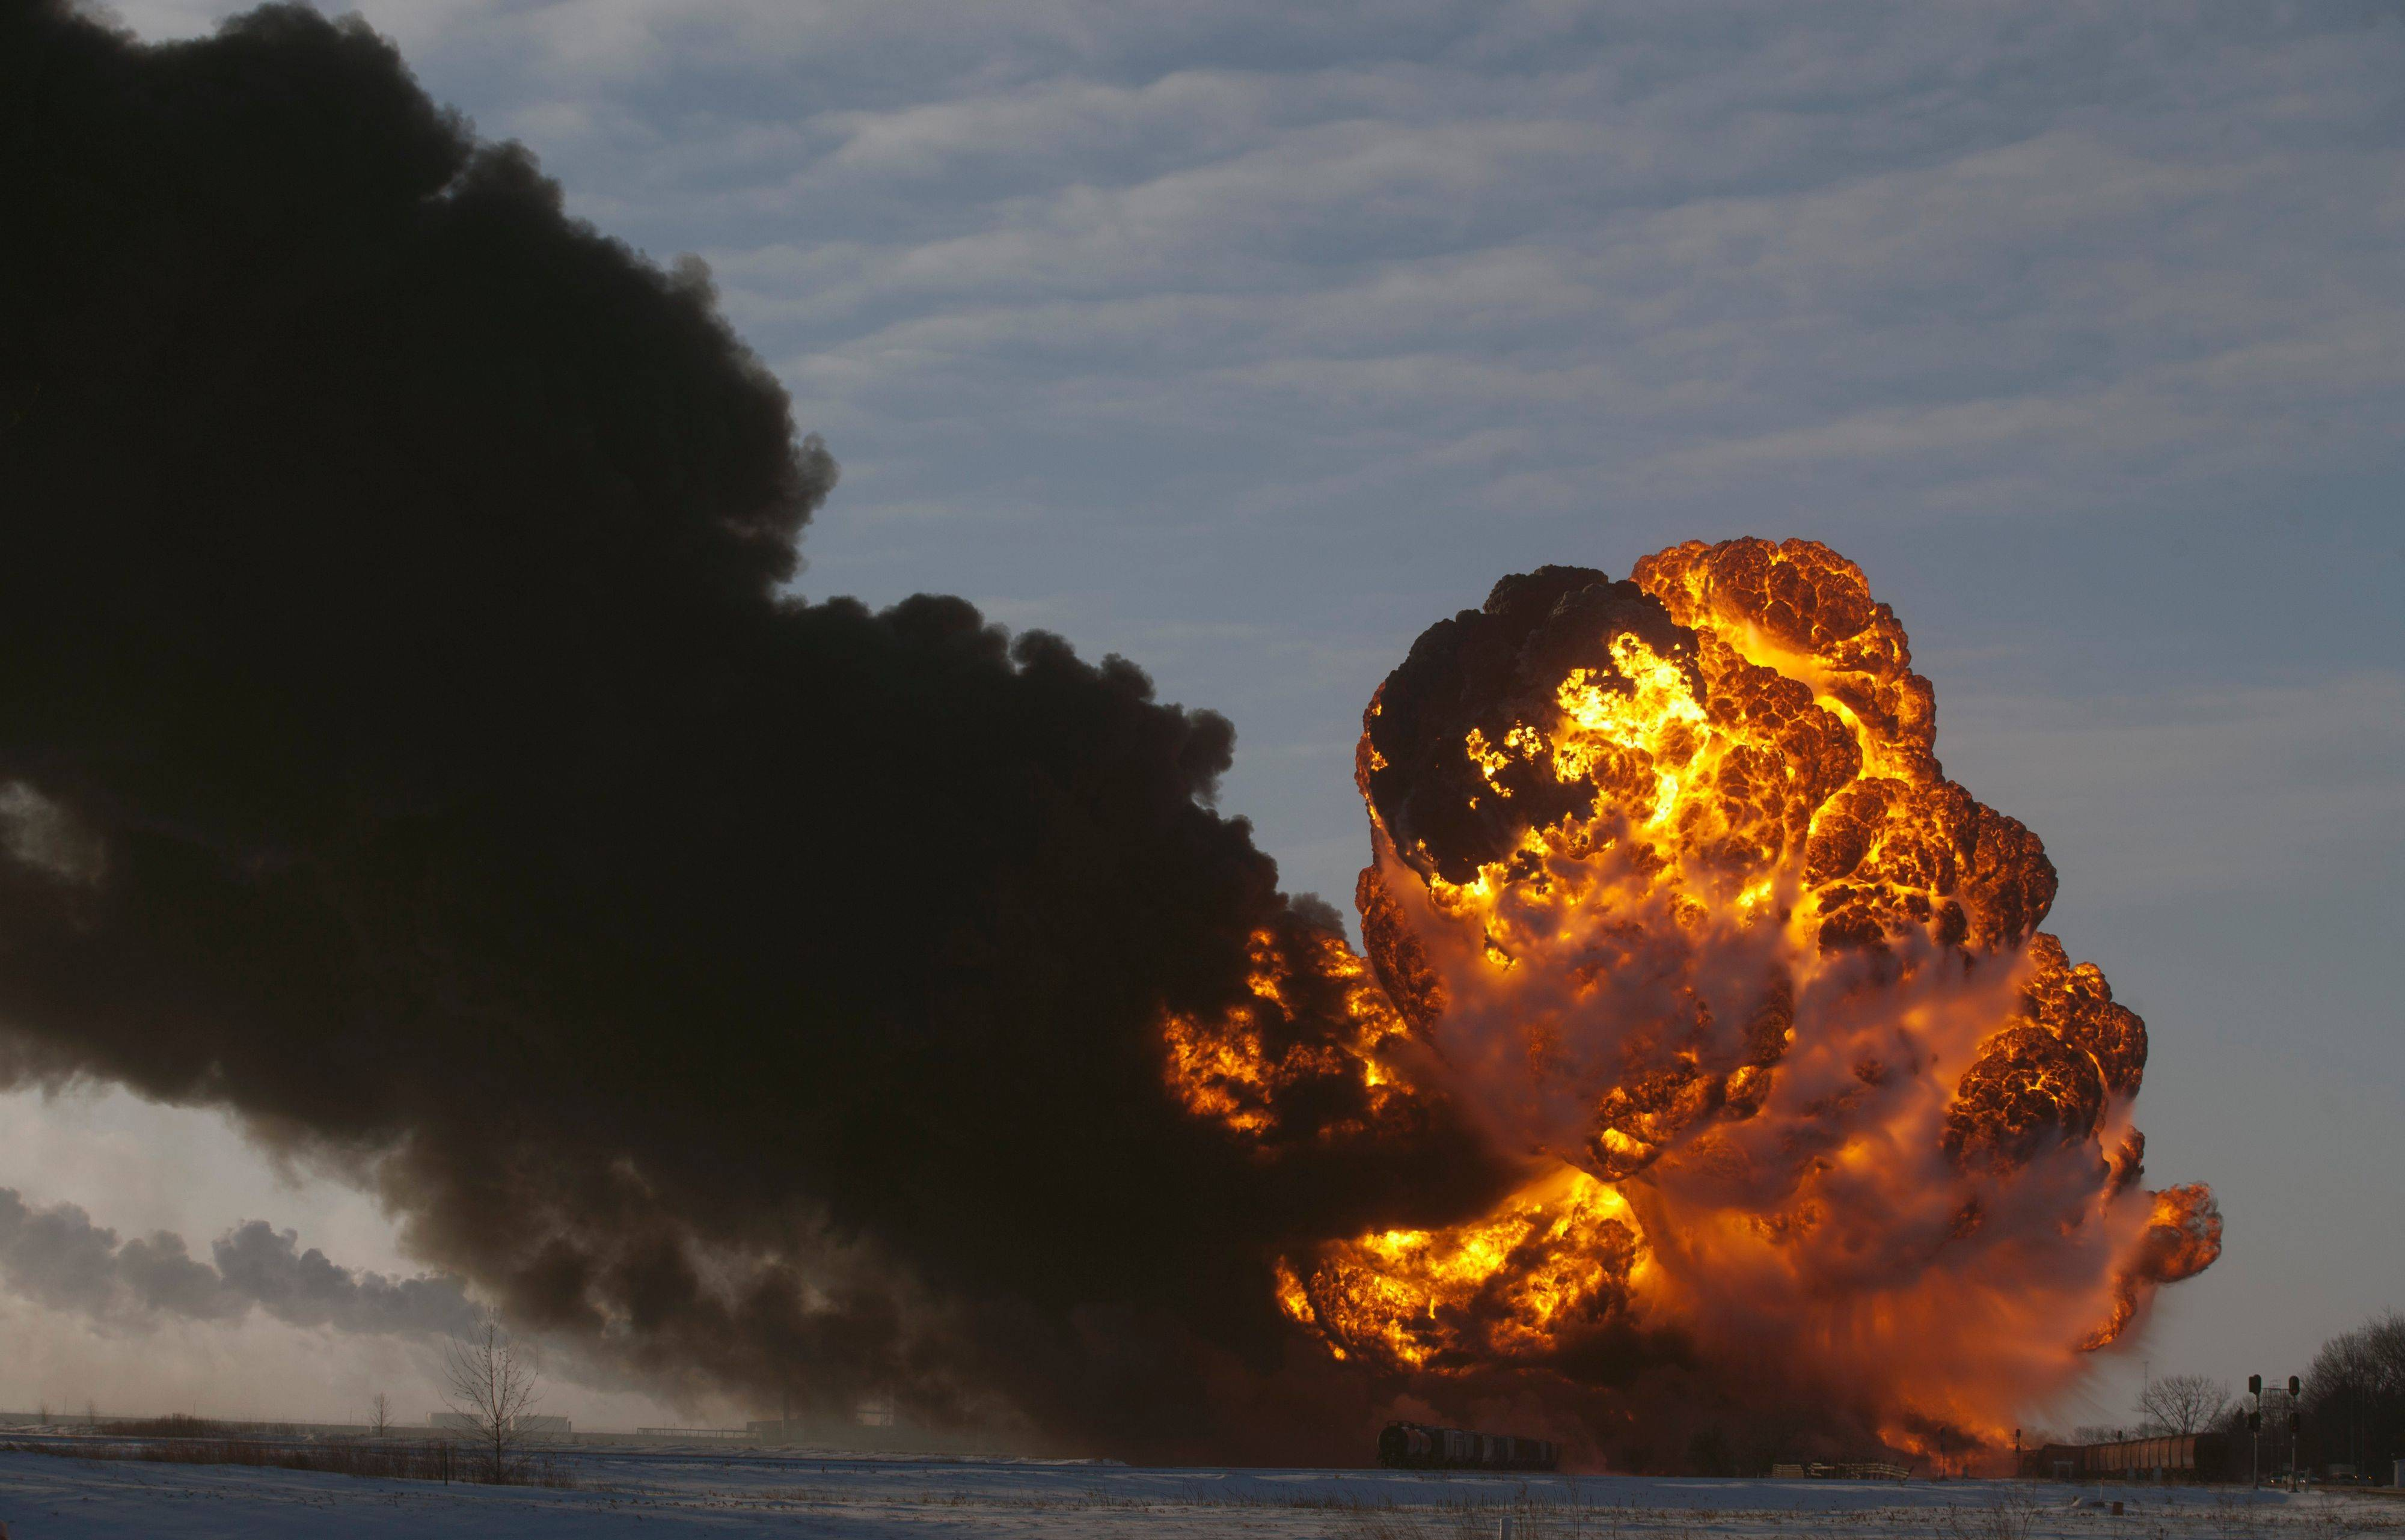 A fireball goes up at the site of an oil train derailment Monday in Casselton, N.D. The train carrying crude oil derailed near Casselton Monday afternoon. Several explosions were reported as some cars on the mile-long train caught fire.